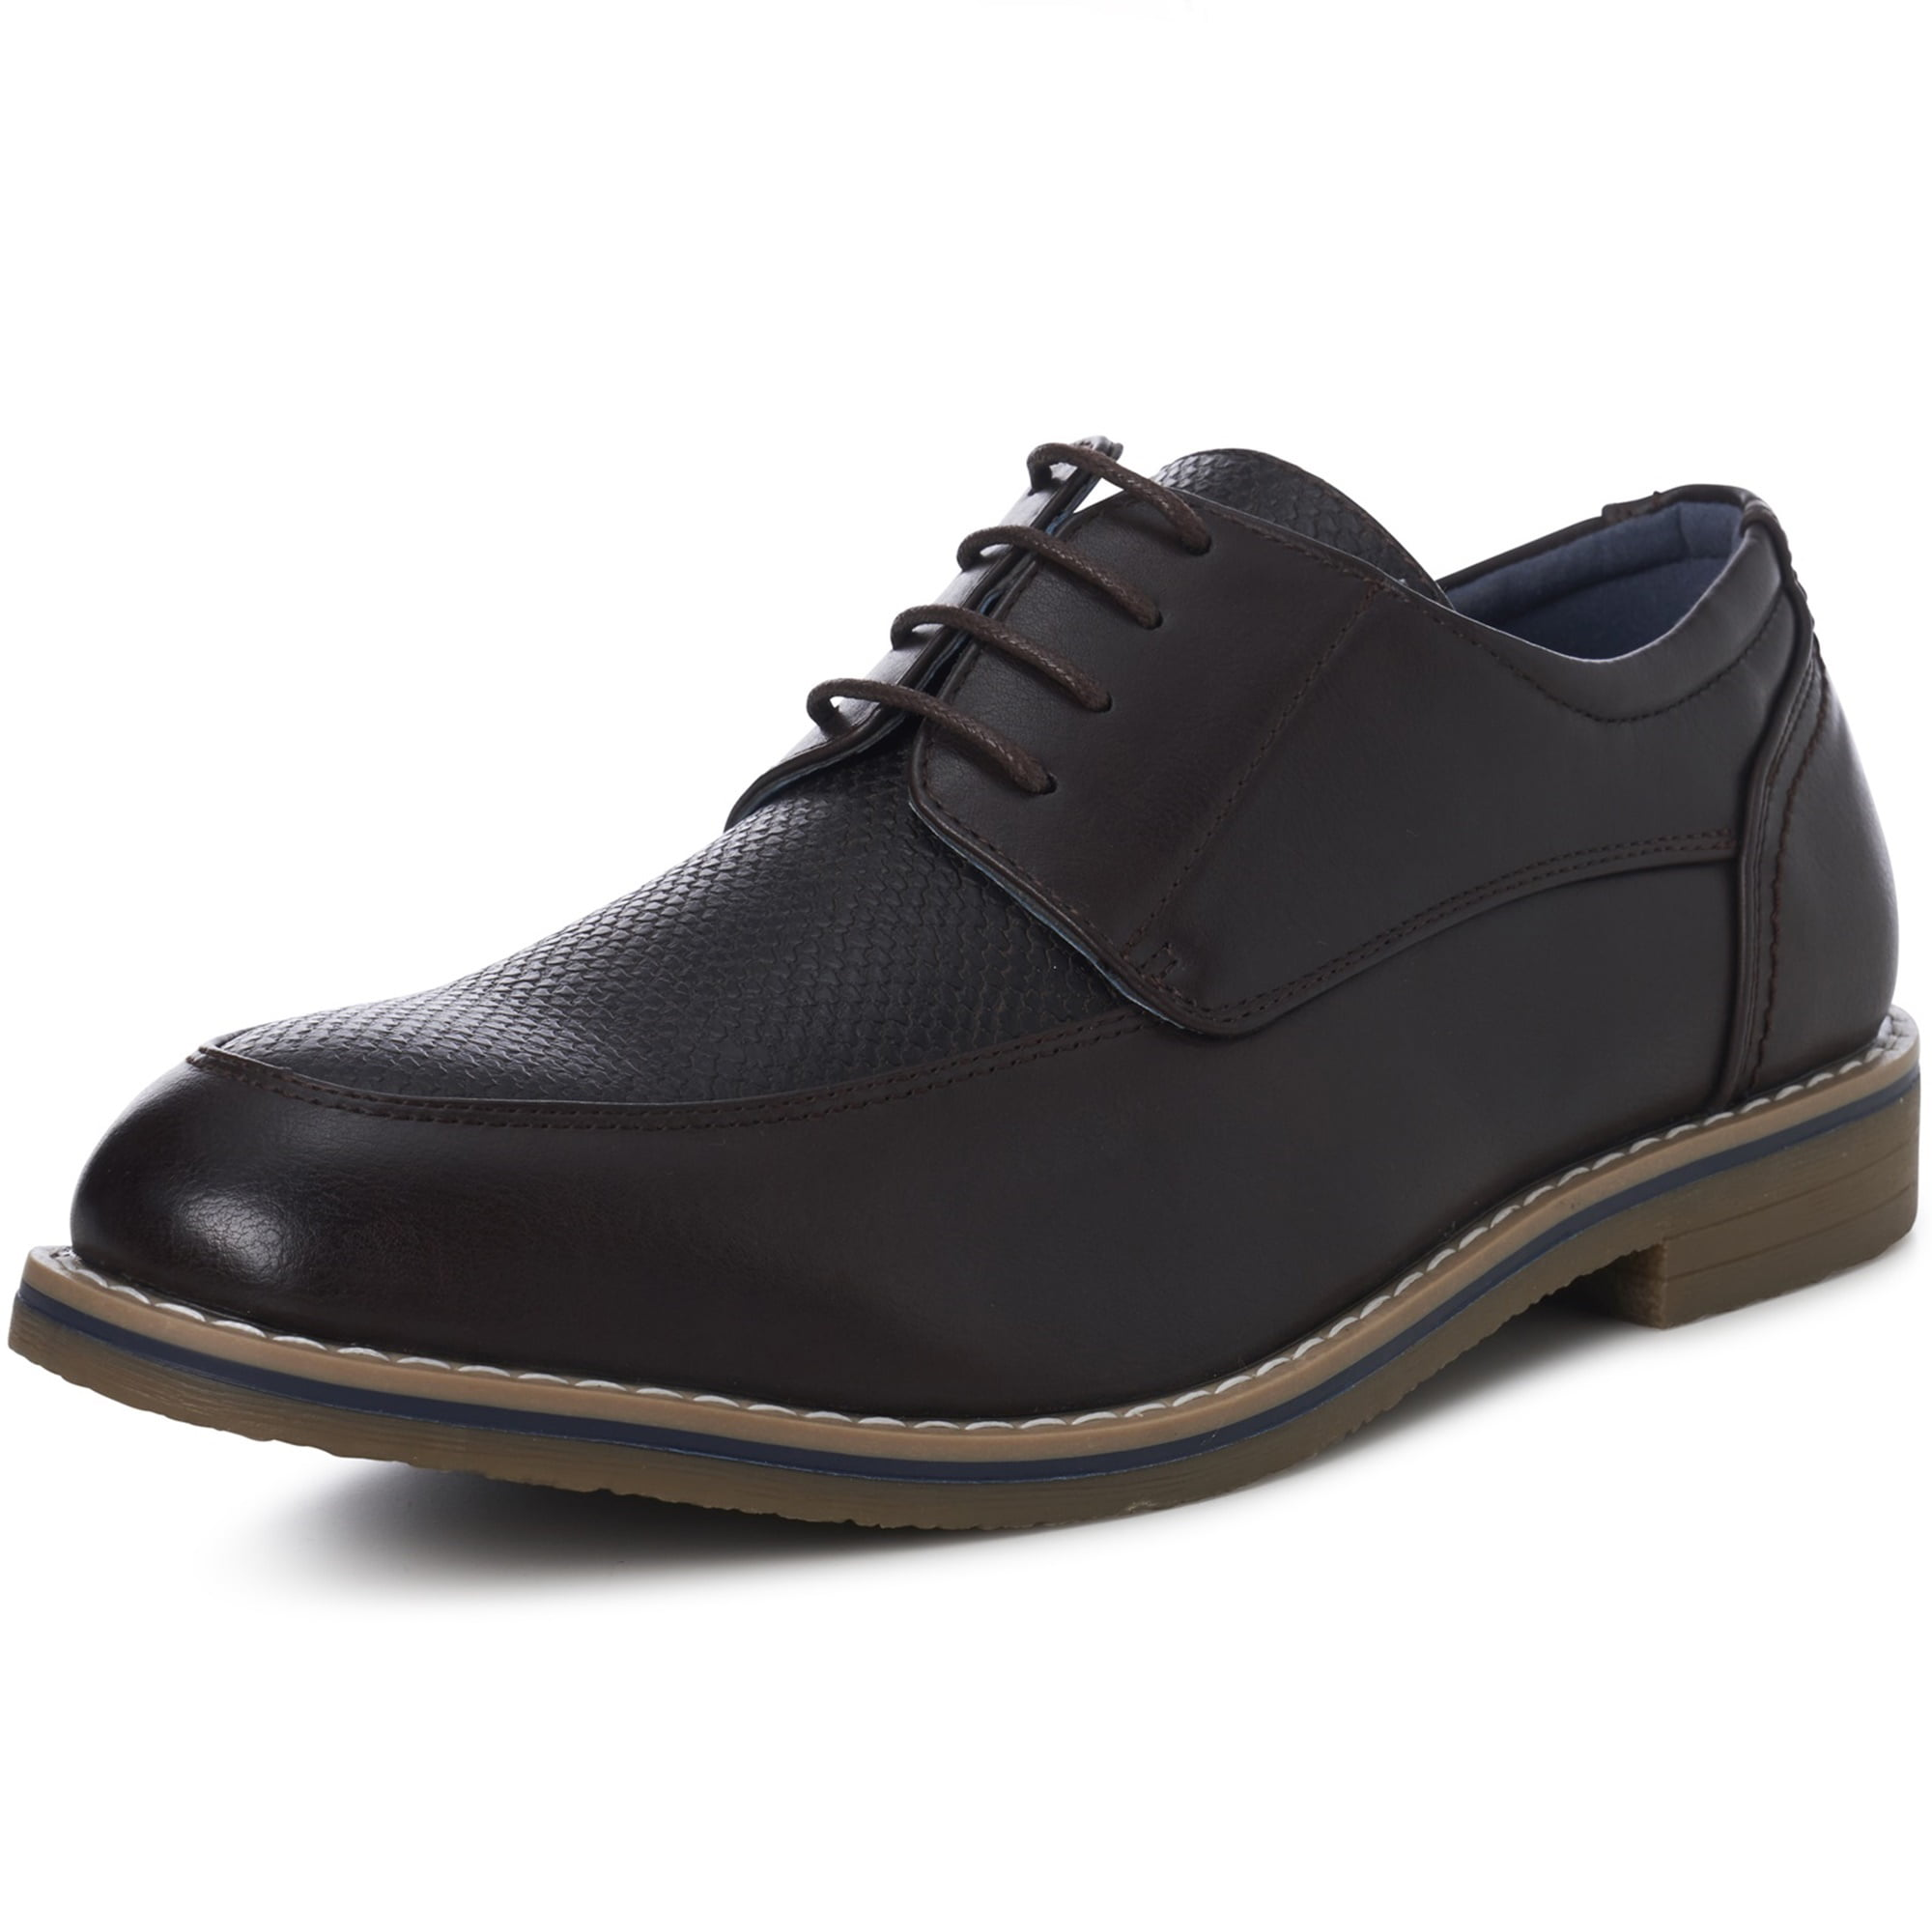 Mens Perforated Shoes Lace Up Round Toe Business Oxfords Breathable Loafers